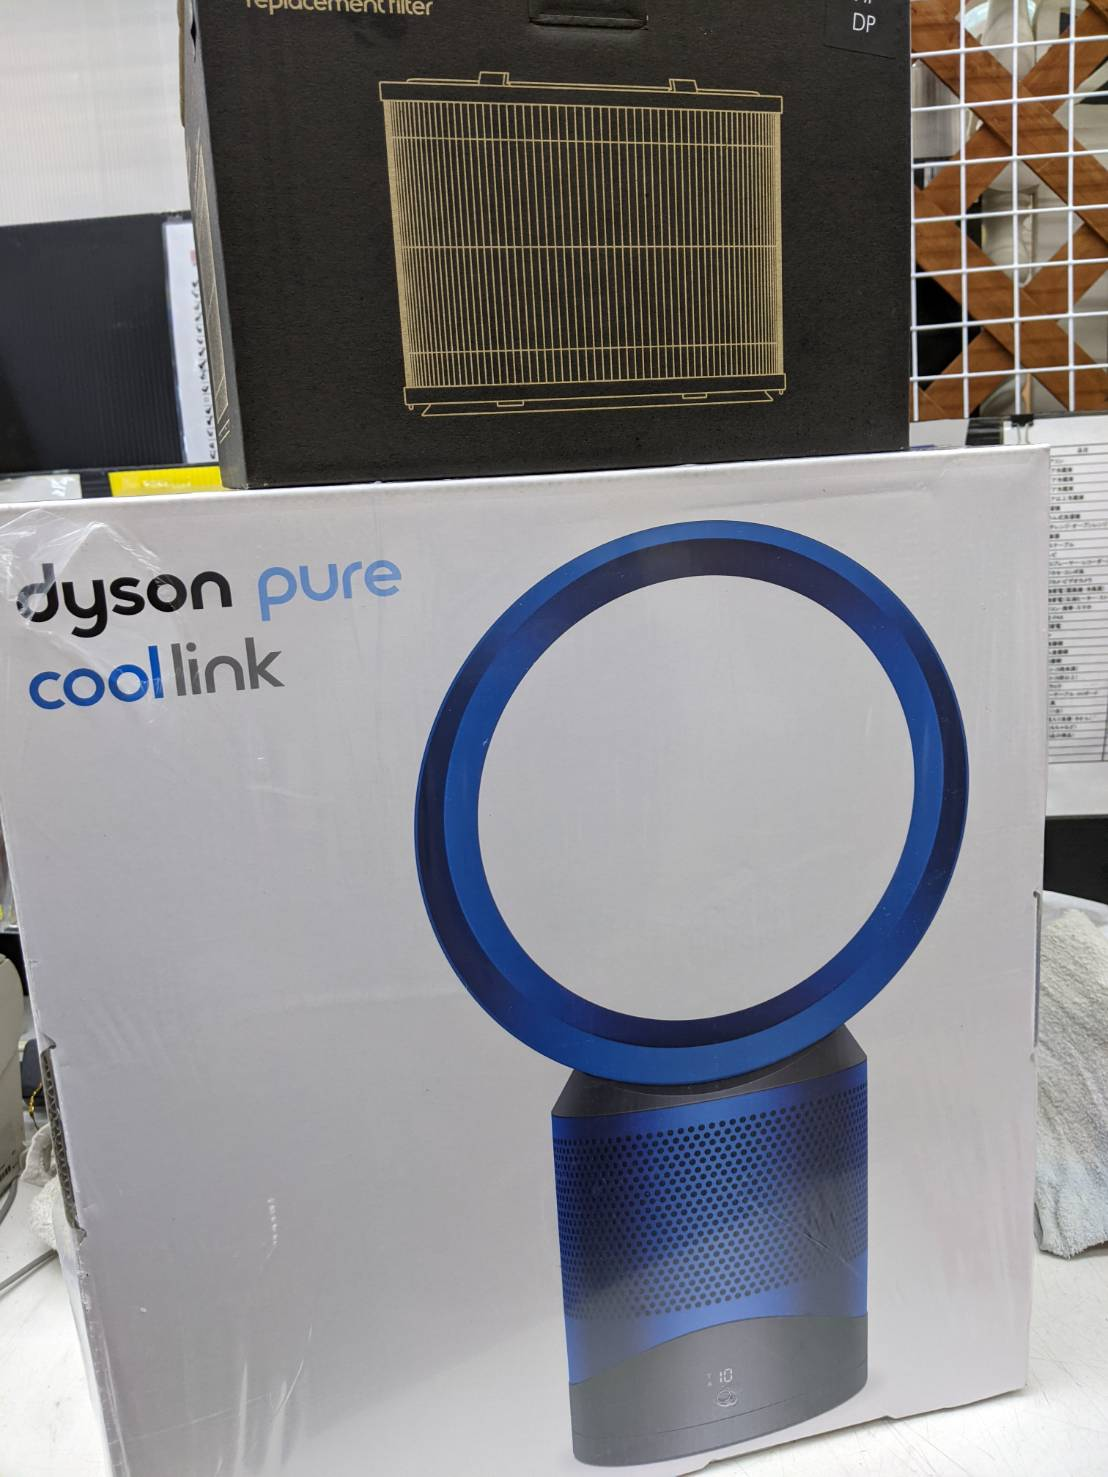 【dyson pure cool link DP03 羽なし 扇風機 空気清浄機】を買取いたしました!の買取-